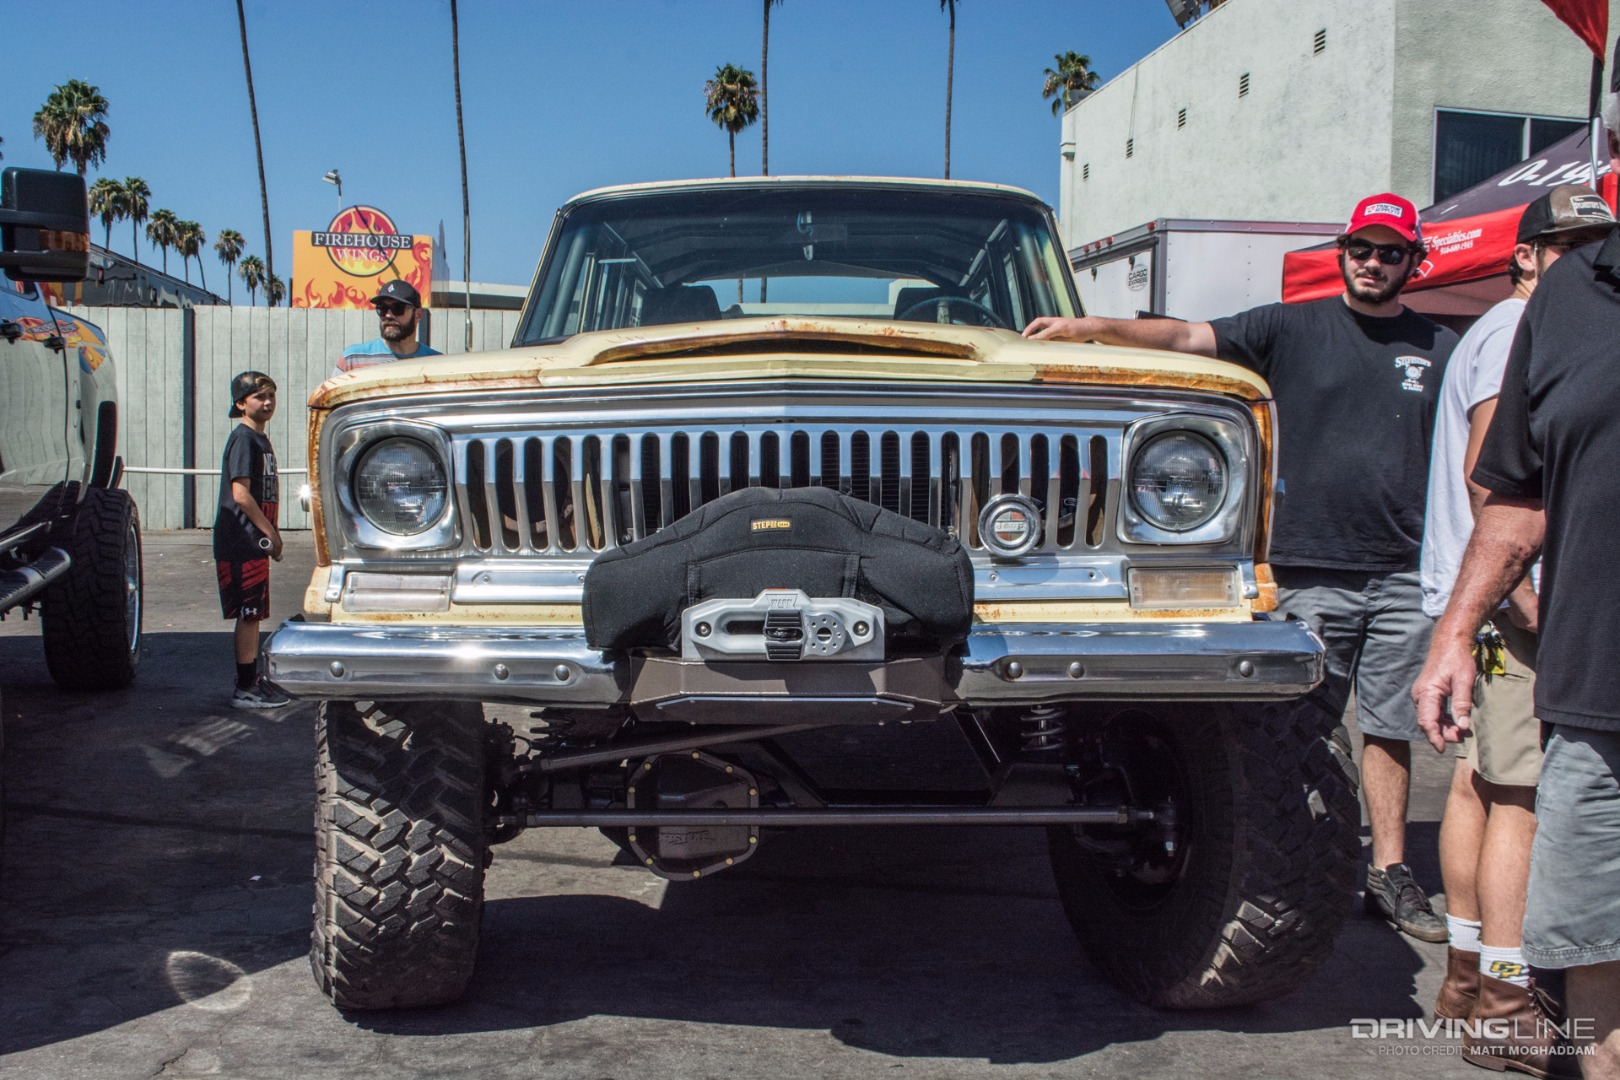 Jeep Wagoneer Review >> Ranch Truck to Race Truck: A '69 Jeep Wagoneer's Journey to the Rebelle Rally | DrivingLine